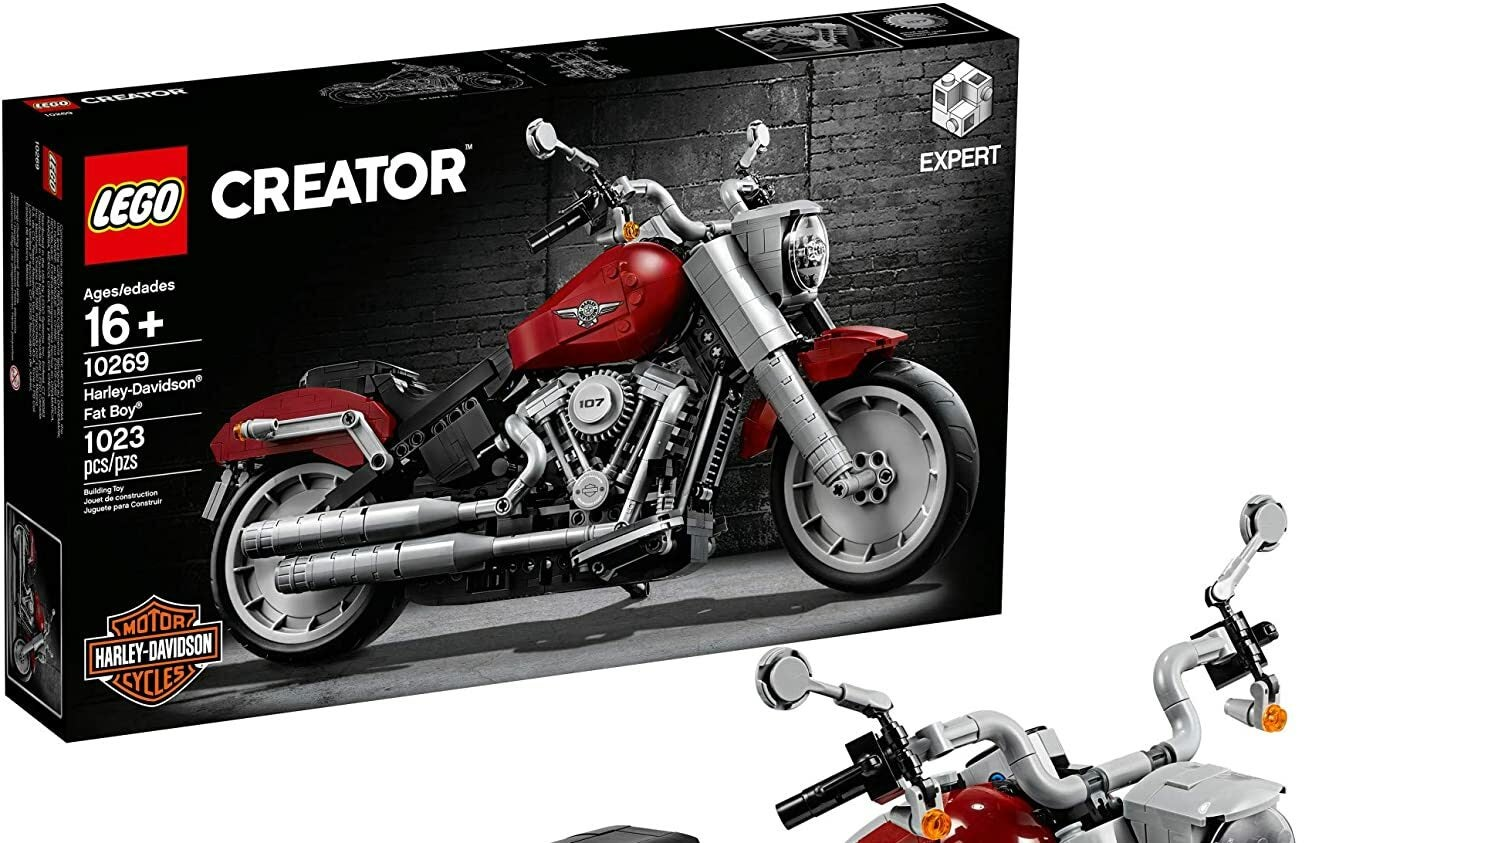 The Best Harley-Davidson Gift Ideas (Review) in 2021